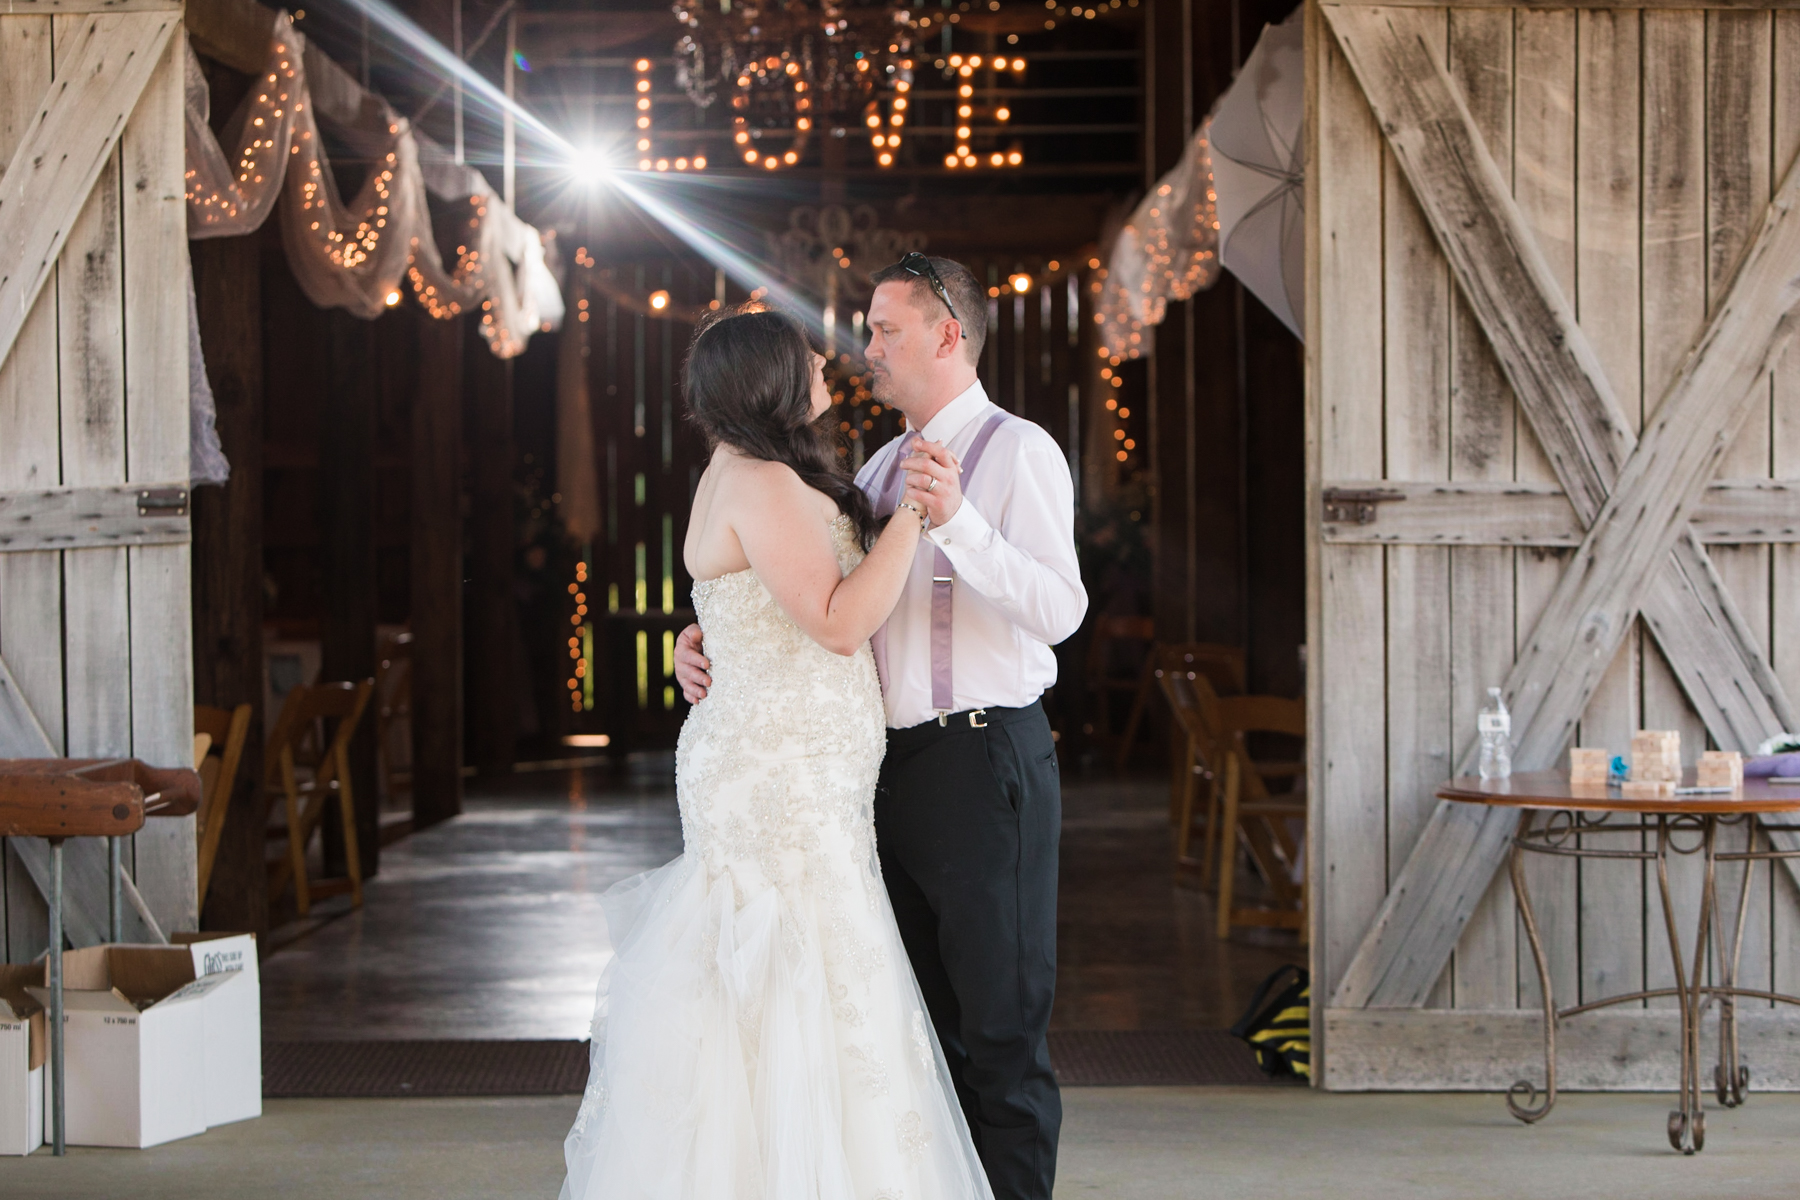 First-dance-cactus-creek-barn.jpg